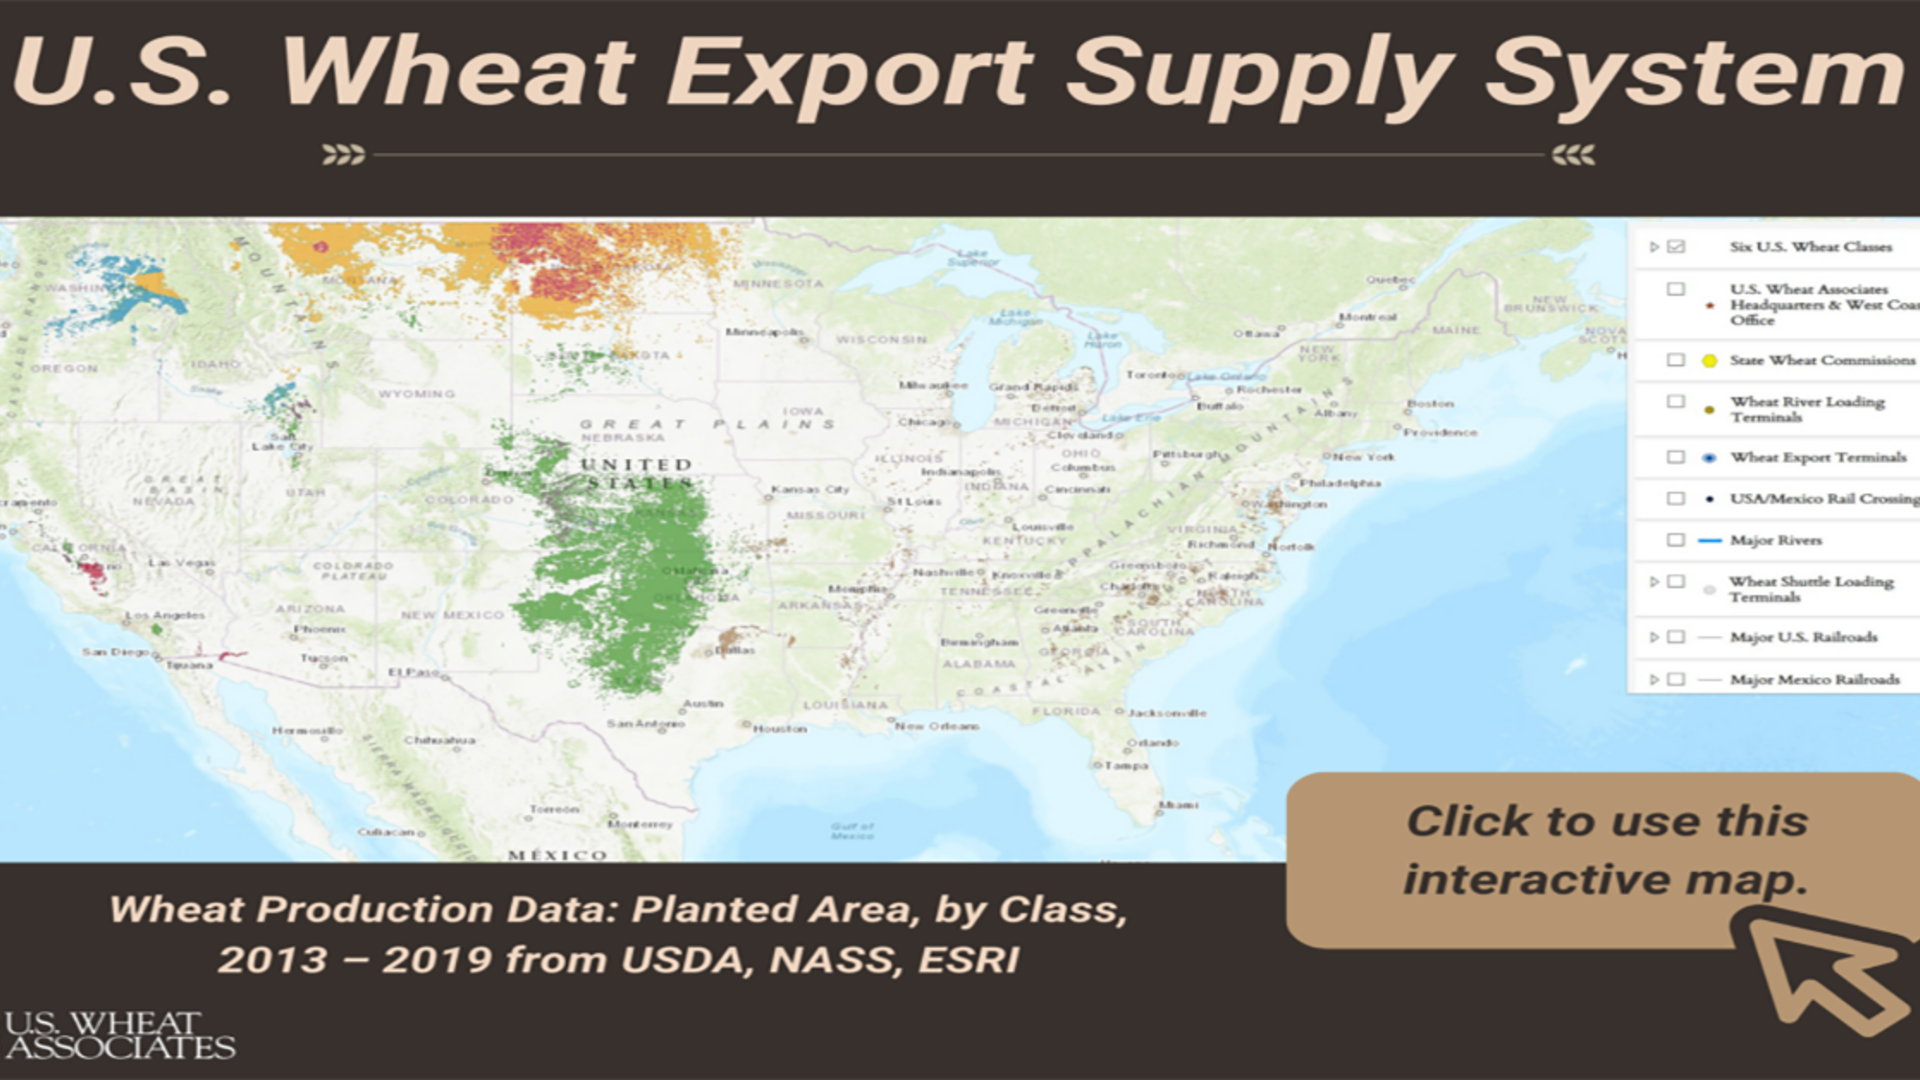 U.S. Wheat Associates Launches Interactive Wheat Export Supply System Map